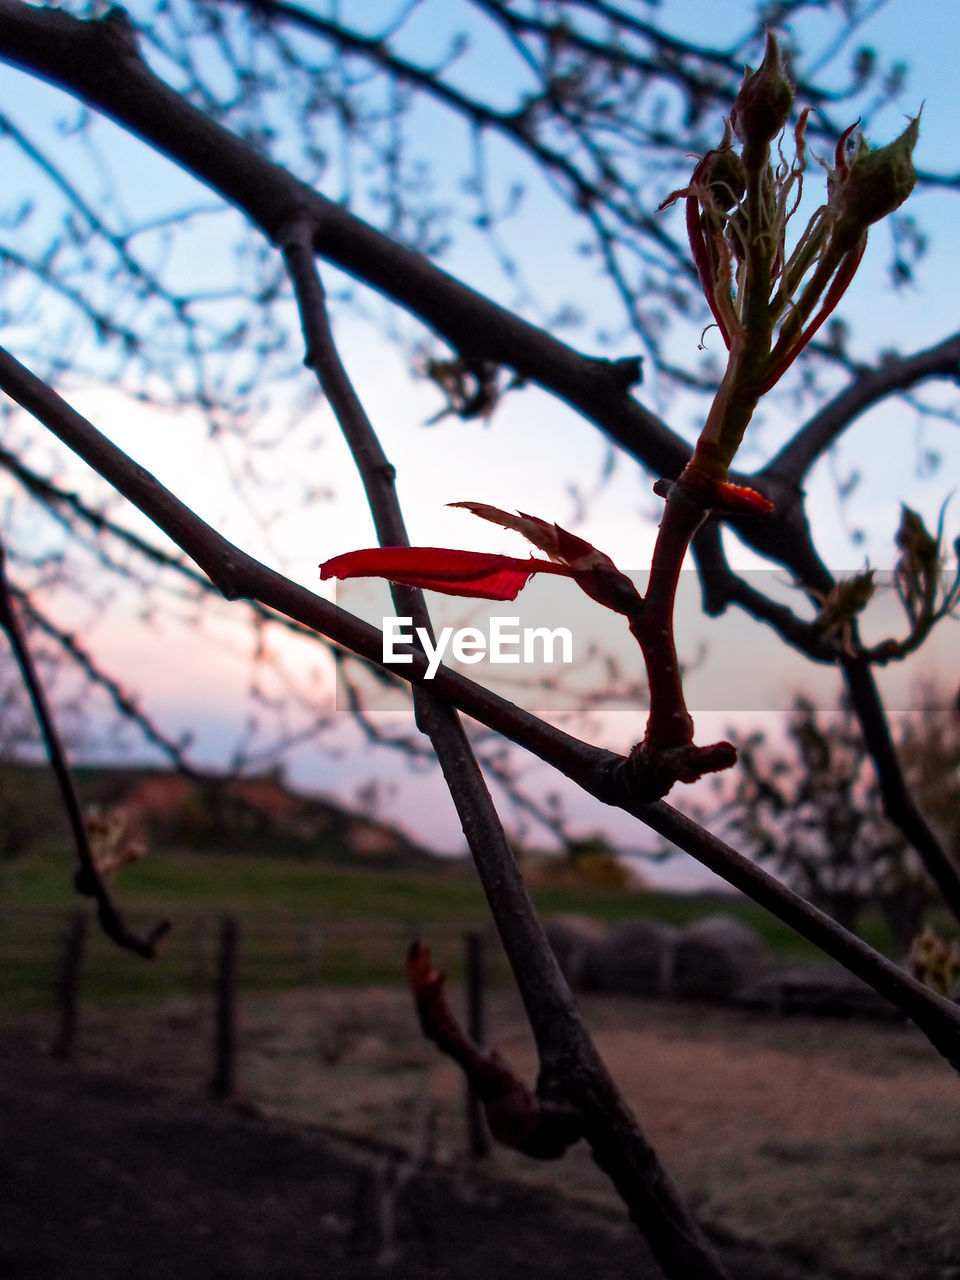 tree, focus on foreground, nature, growth, no people, day, outdoors, branch, beauty in nature, close-up